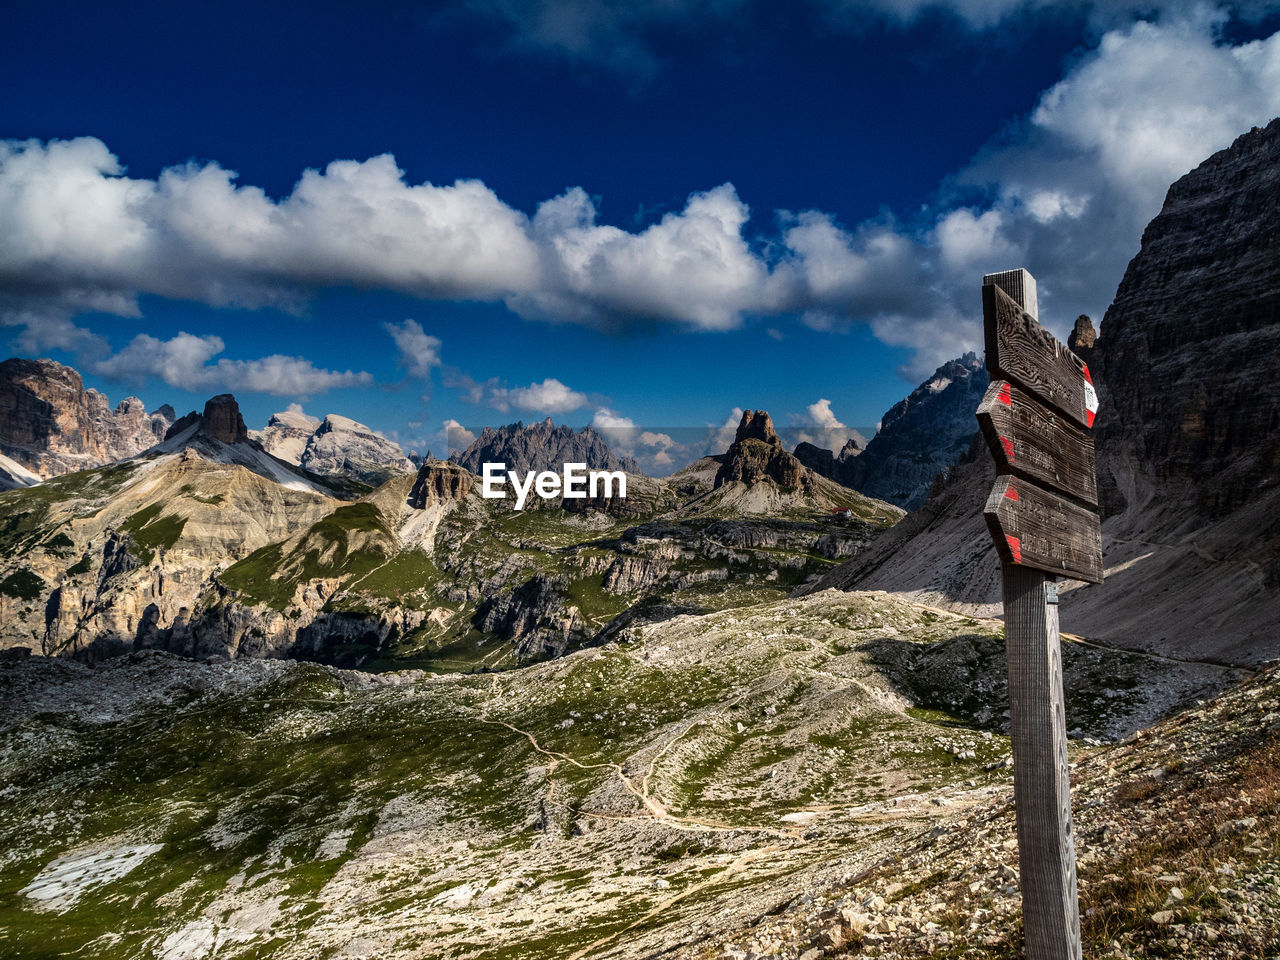 mountain, sky, cloud - sky, scenics - nature, mountain range, beauty in nature, environment, tranquility, tranquil scene, nature, non-urban scene, landscape, day, rock, idyllic, no people, outdoors, solid, snow, rock - object, formation, mountain peak, snowcapped mountain